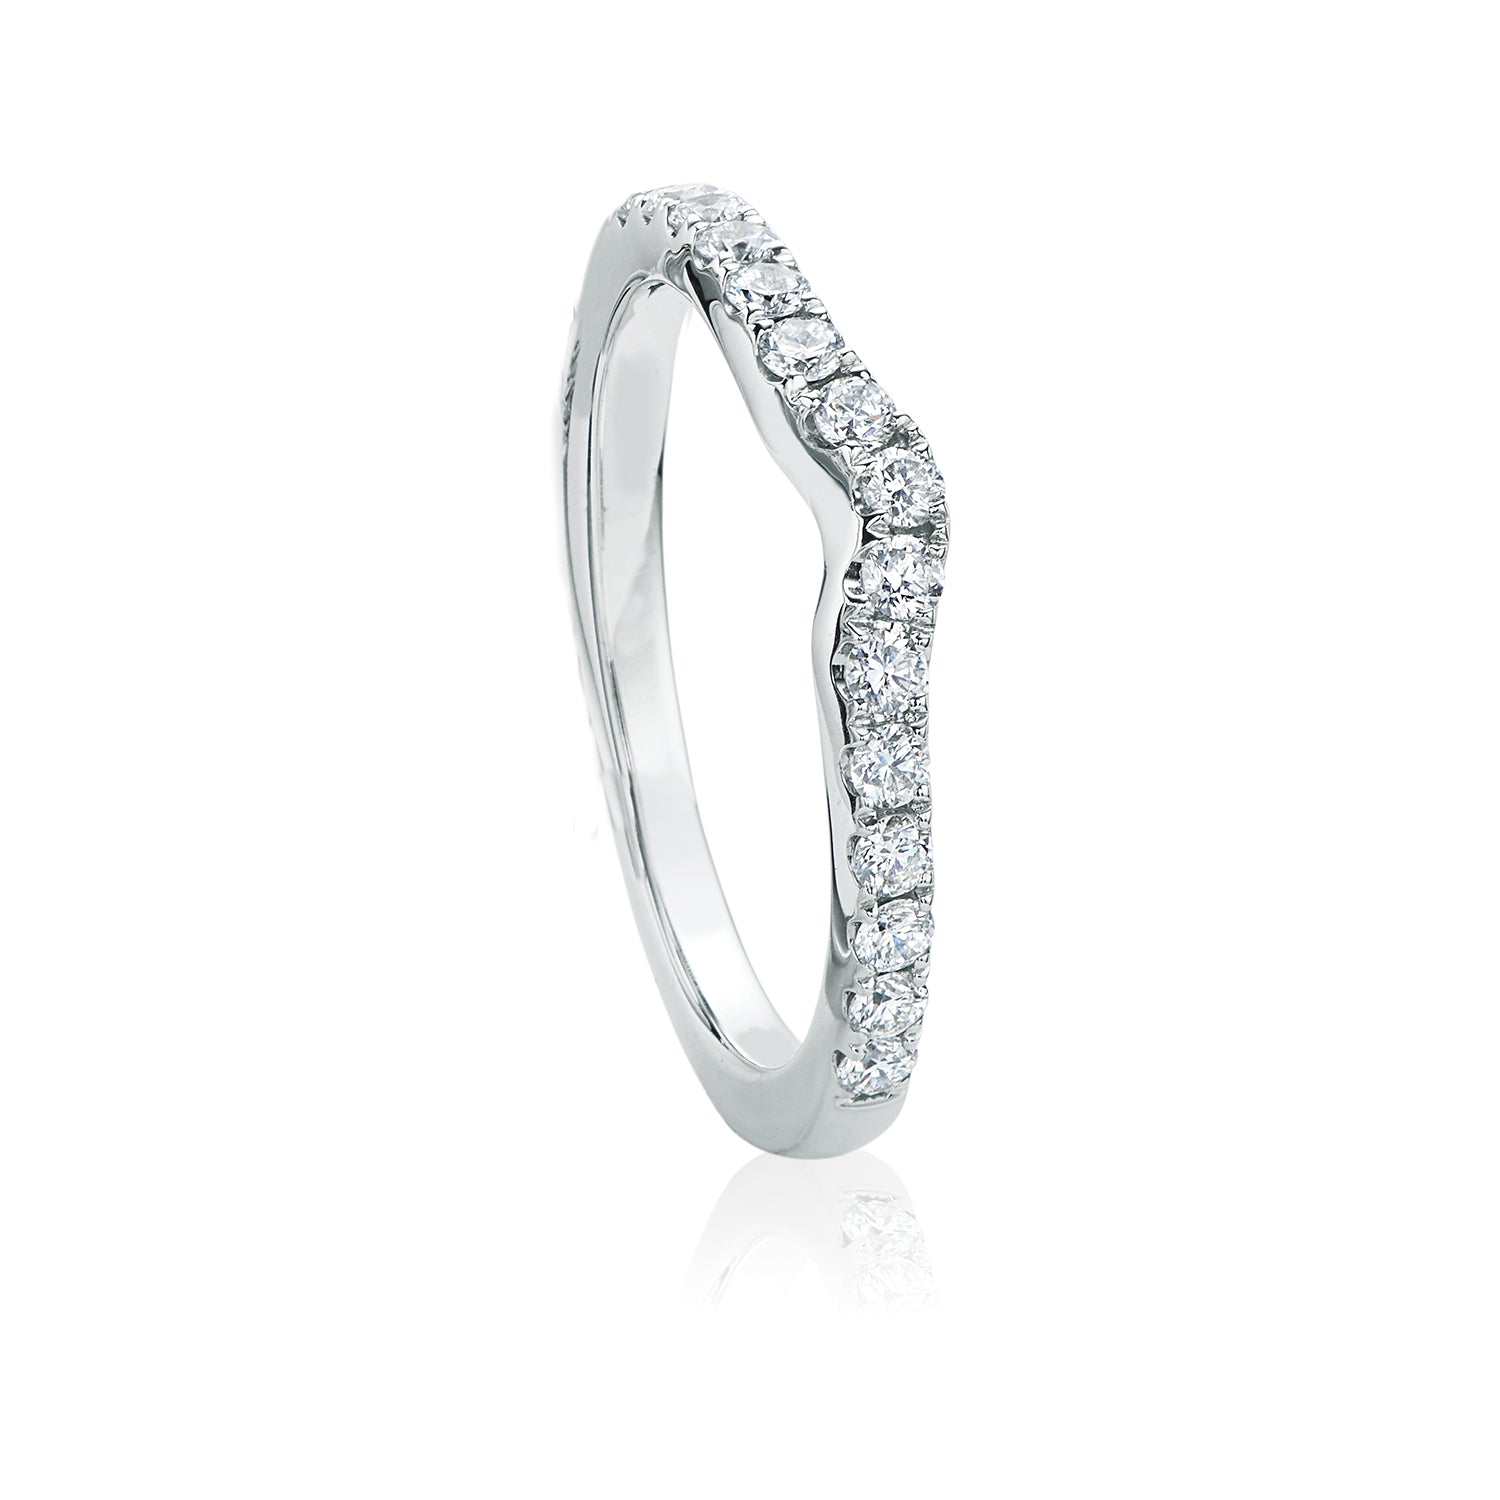 Rand 18ct White Gold Round Brilliant Cut with 0.40 CARAT tw of Diamonds